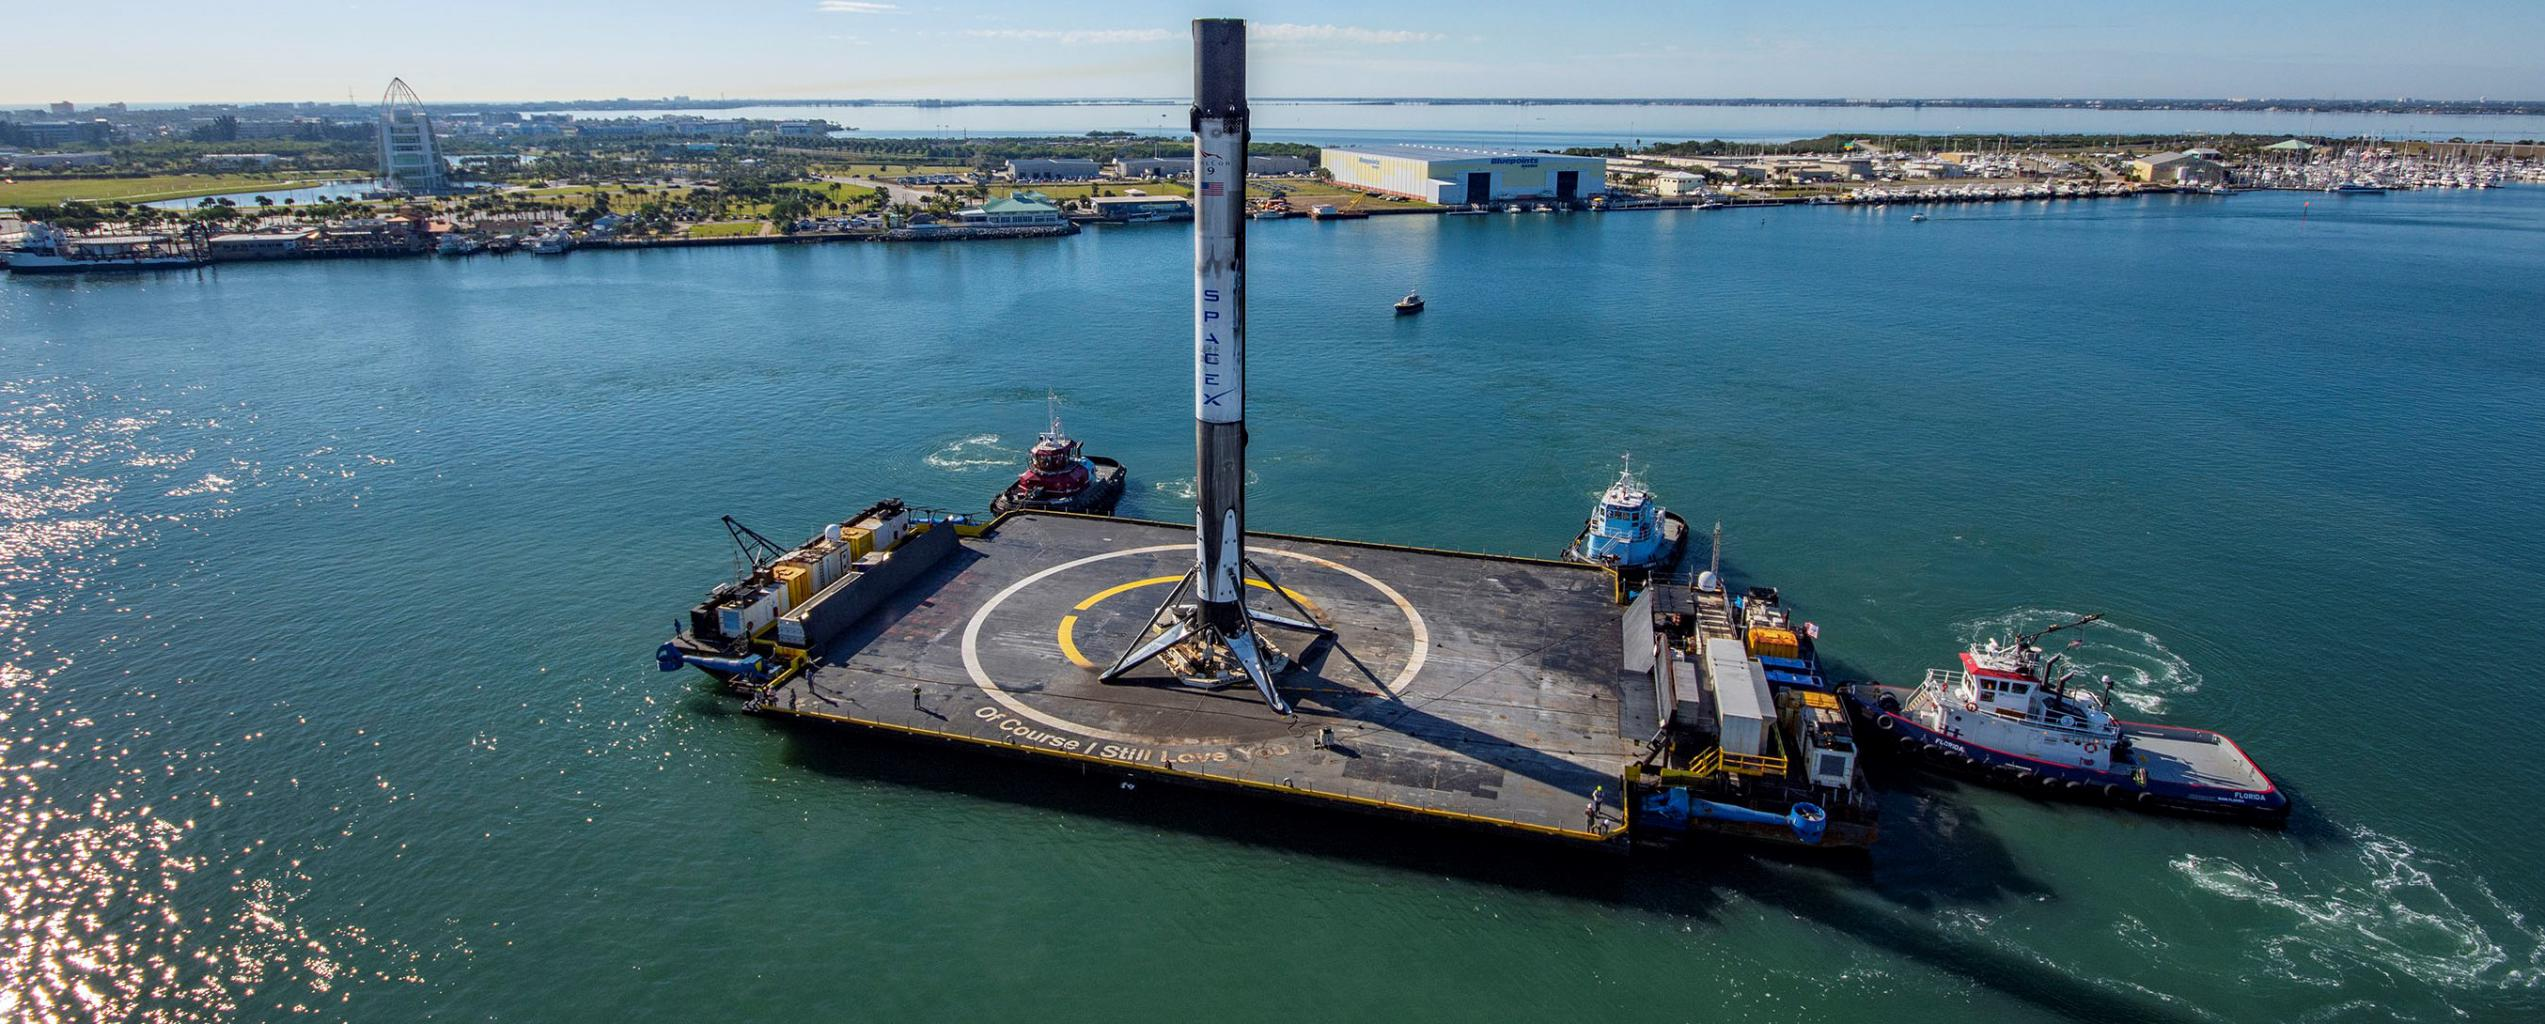 CRS-19 Falcon 9 B1059 OCISLY 120519 (SpaceX) port arrival 1 crop 3 (c)